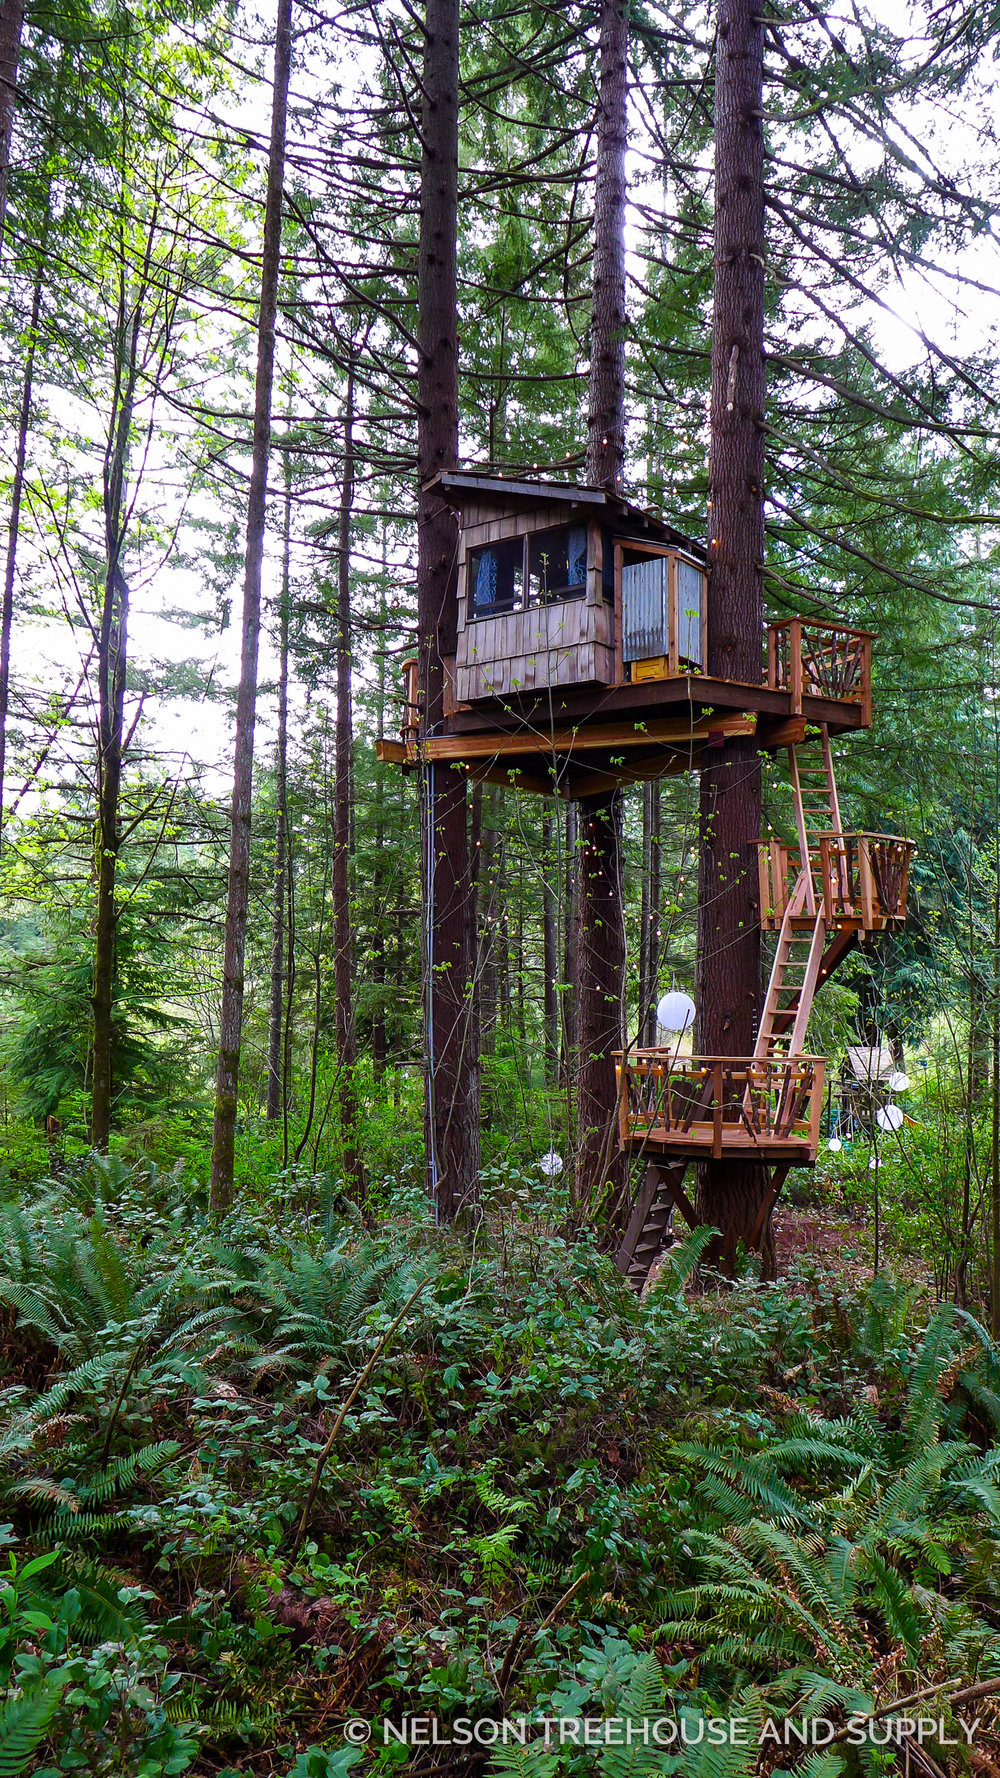 Series of ladders ascend to Emily and Patrick's treehouse in Washington.